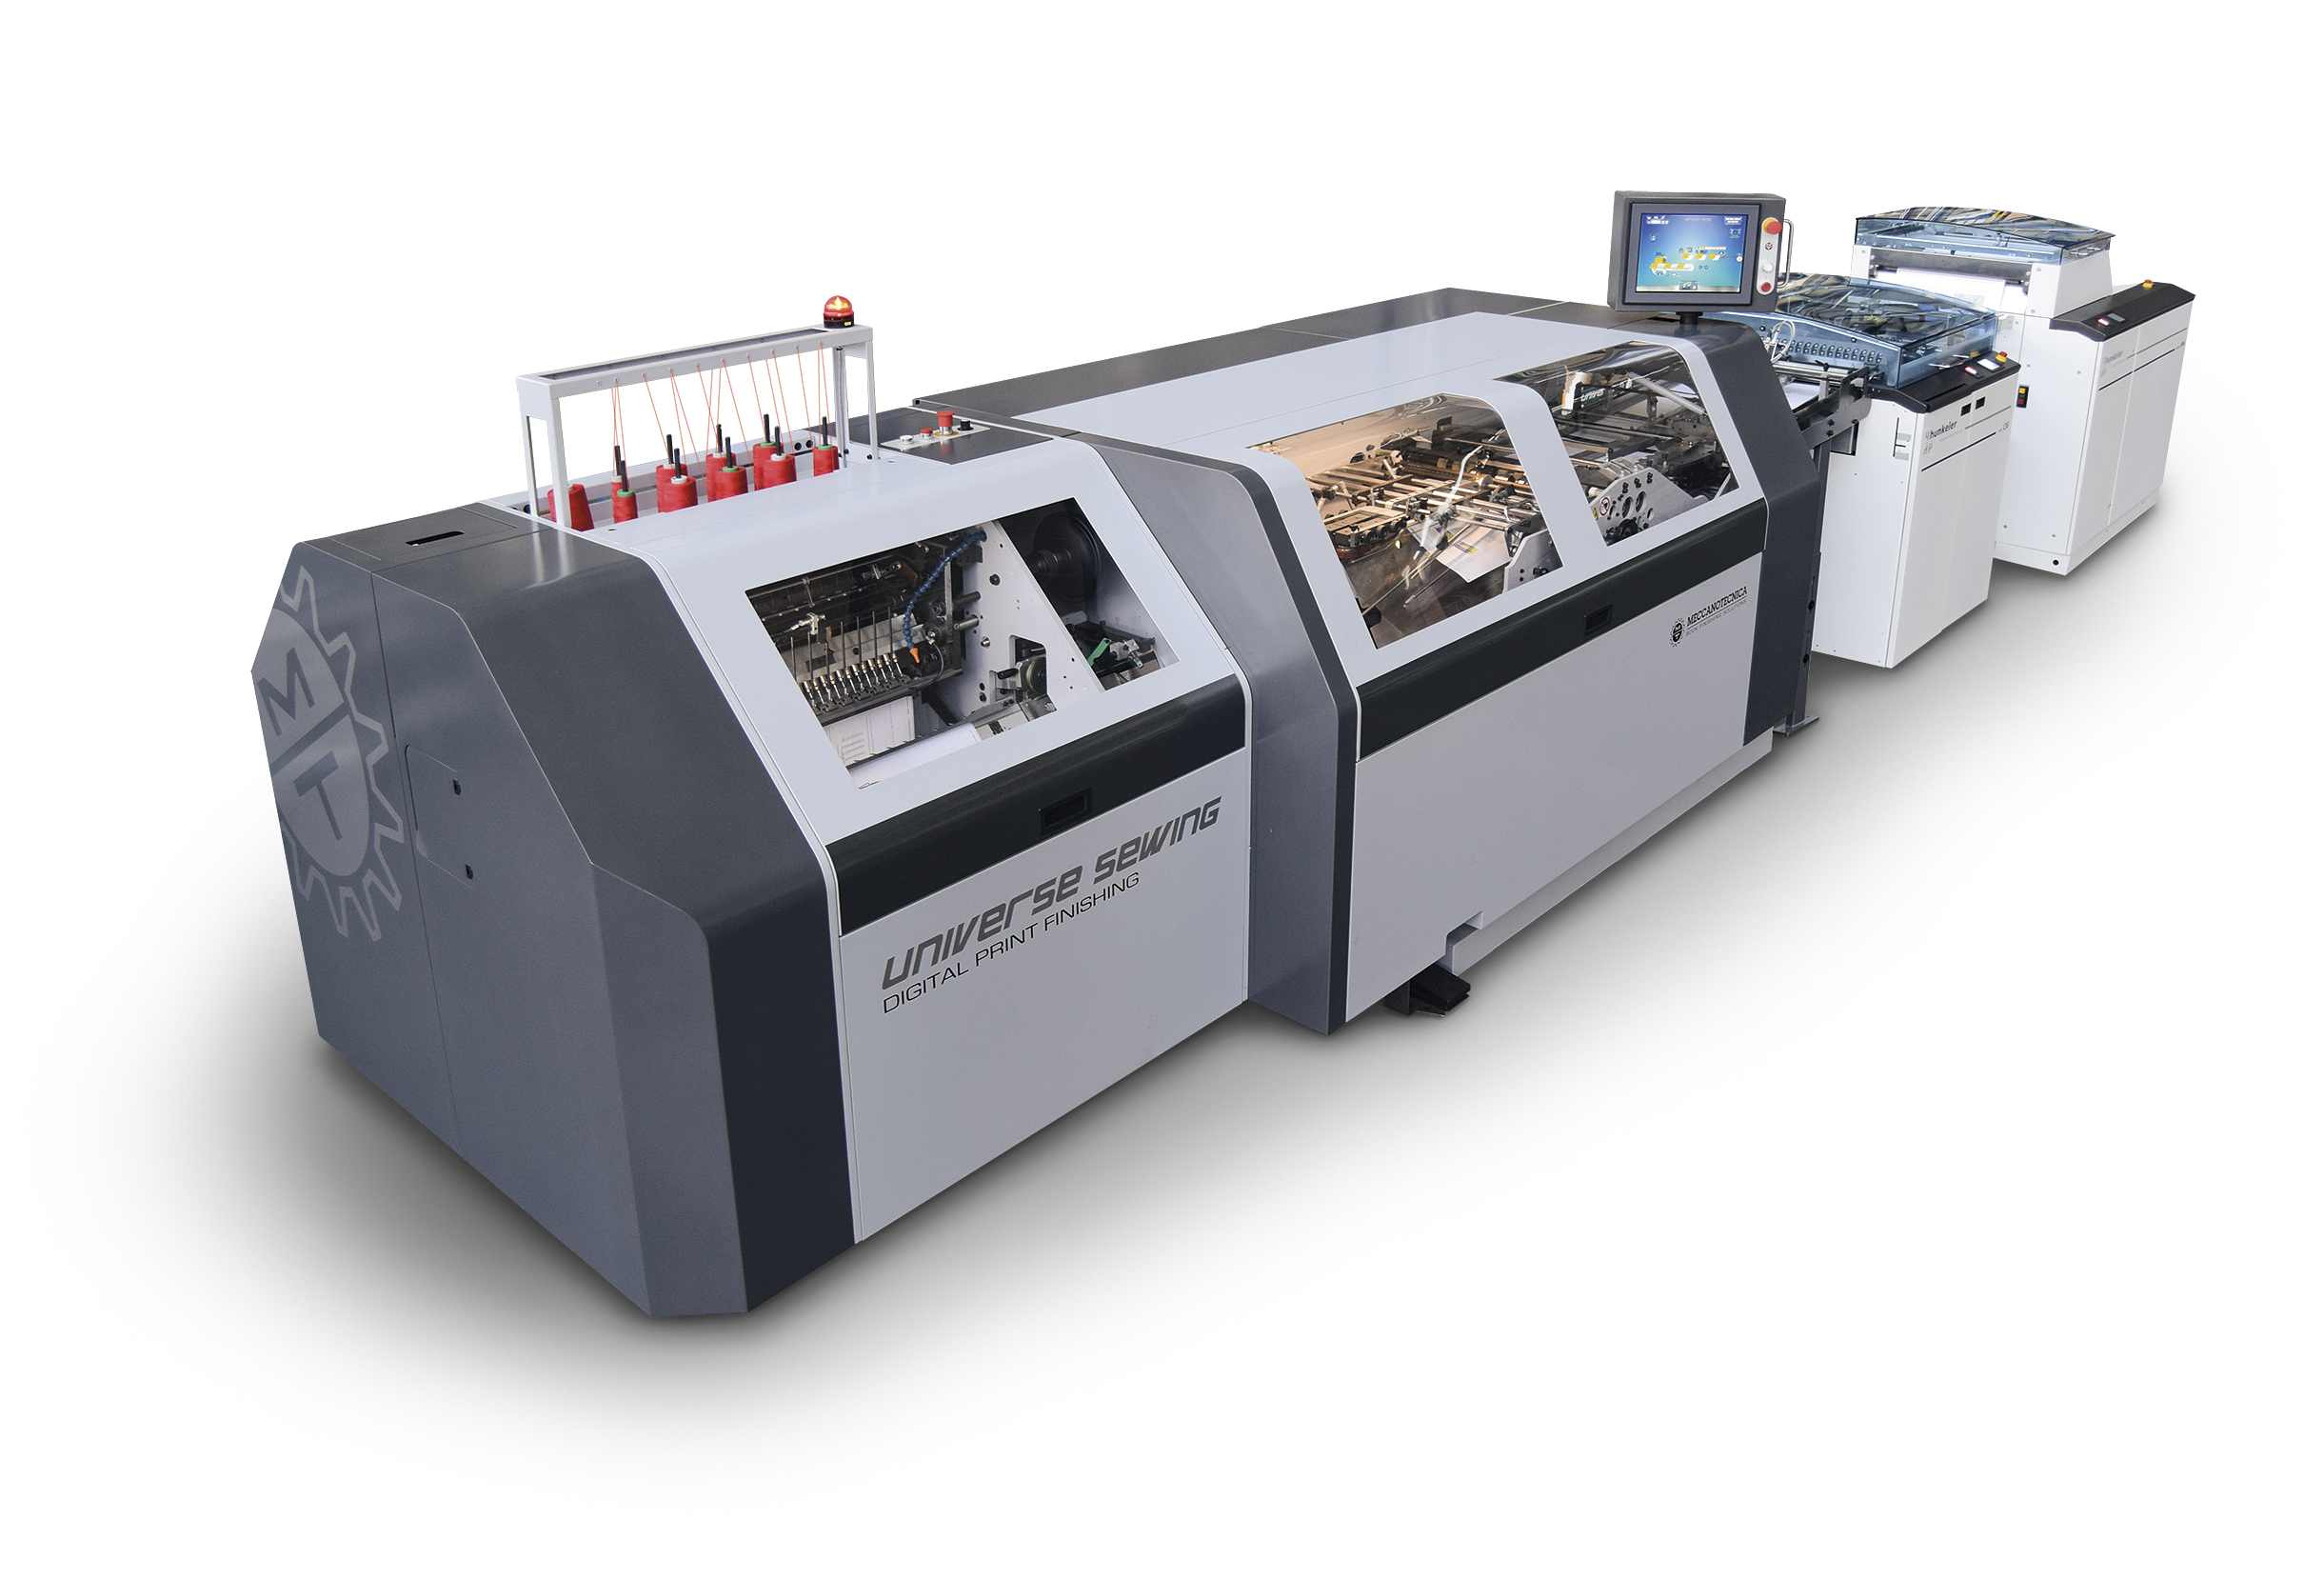 Image from SCREEN AND MECCANOTECNICA TO COLLABORATE FOR OPTIMISED PREMIUM QUALITY BOOK FINISHING